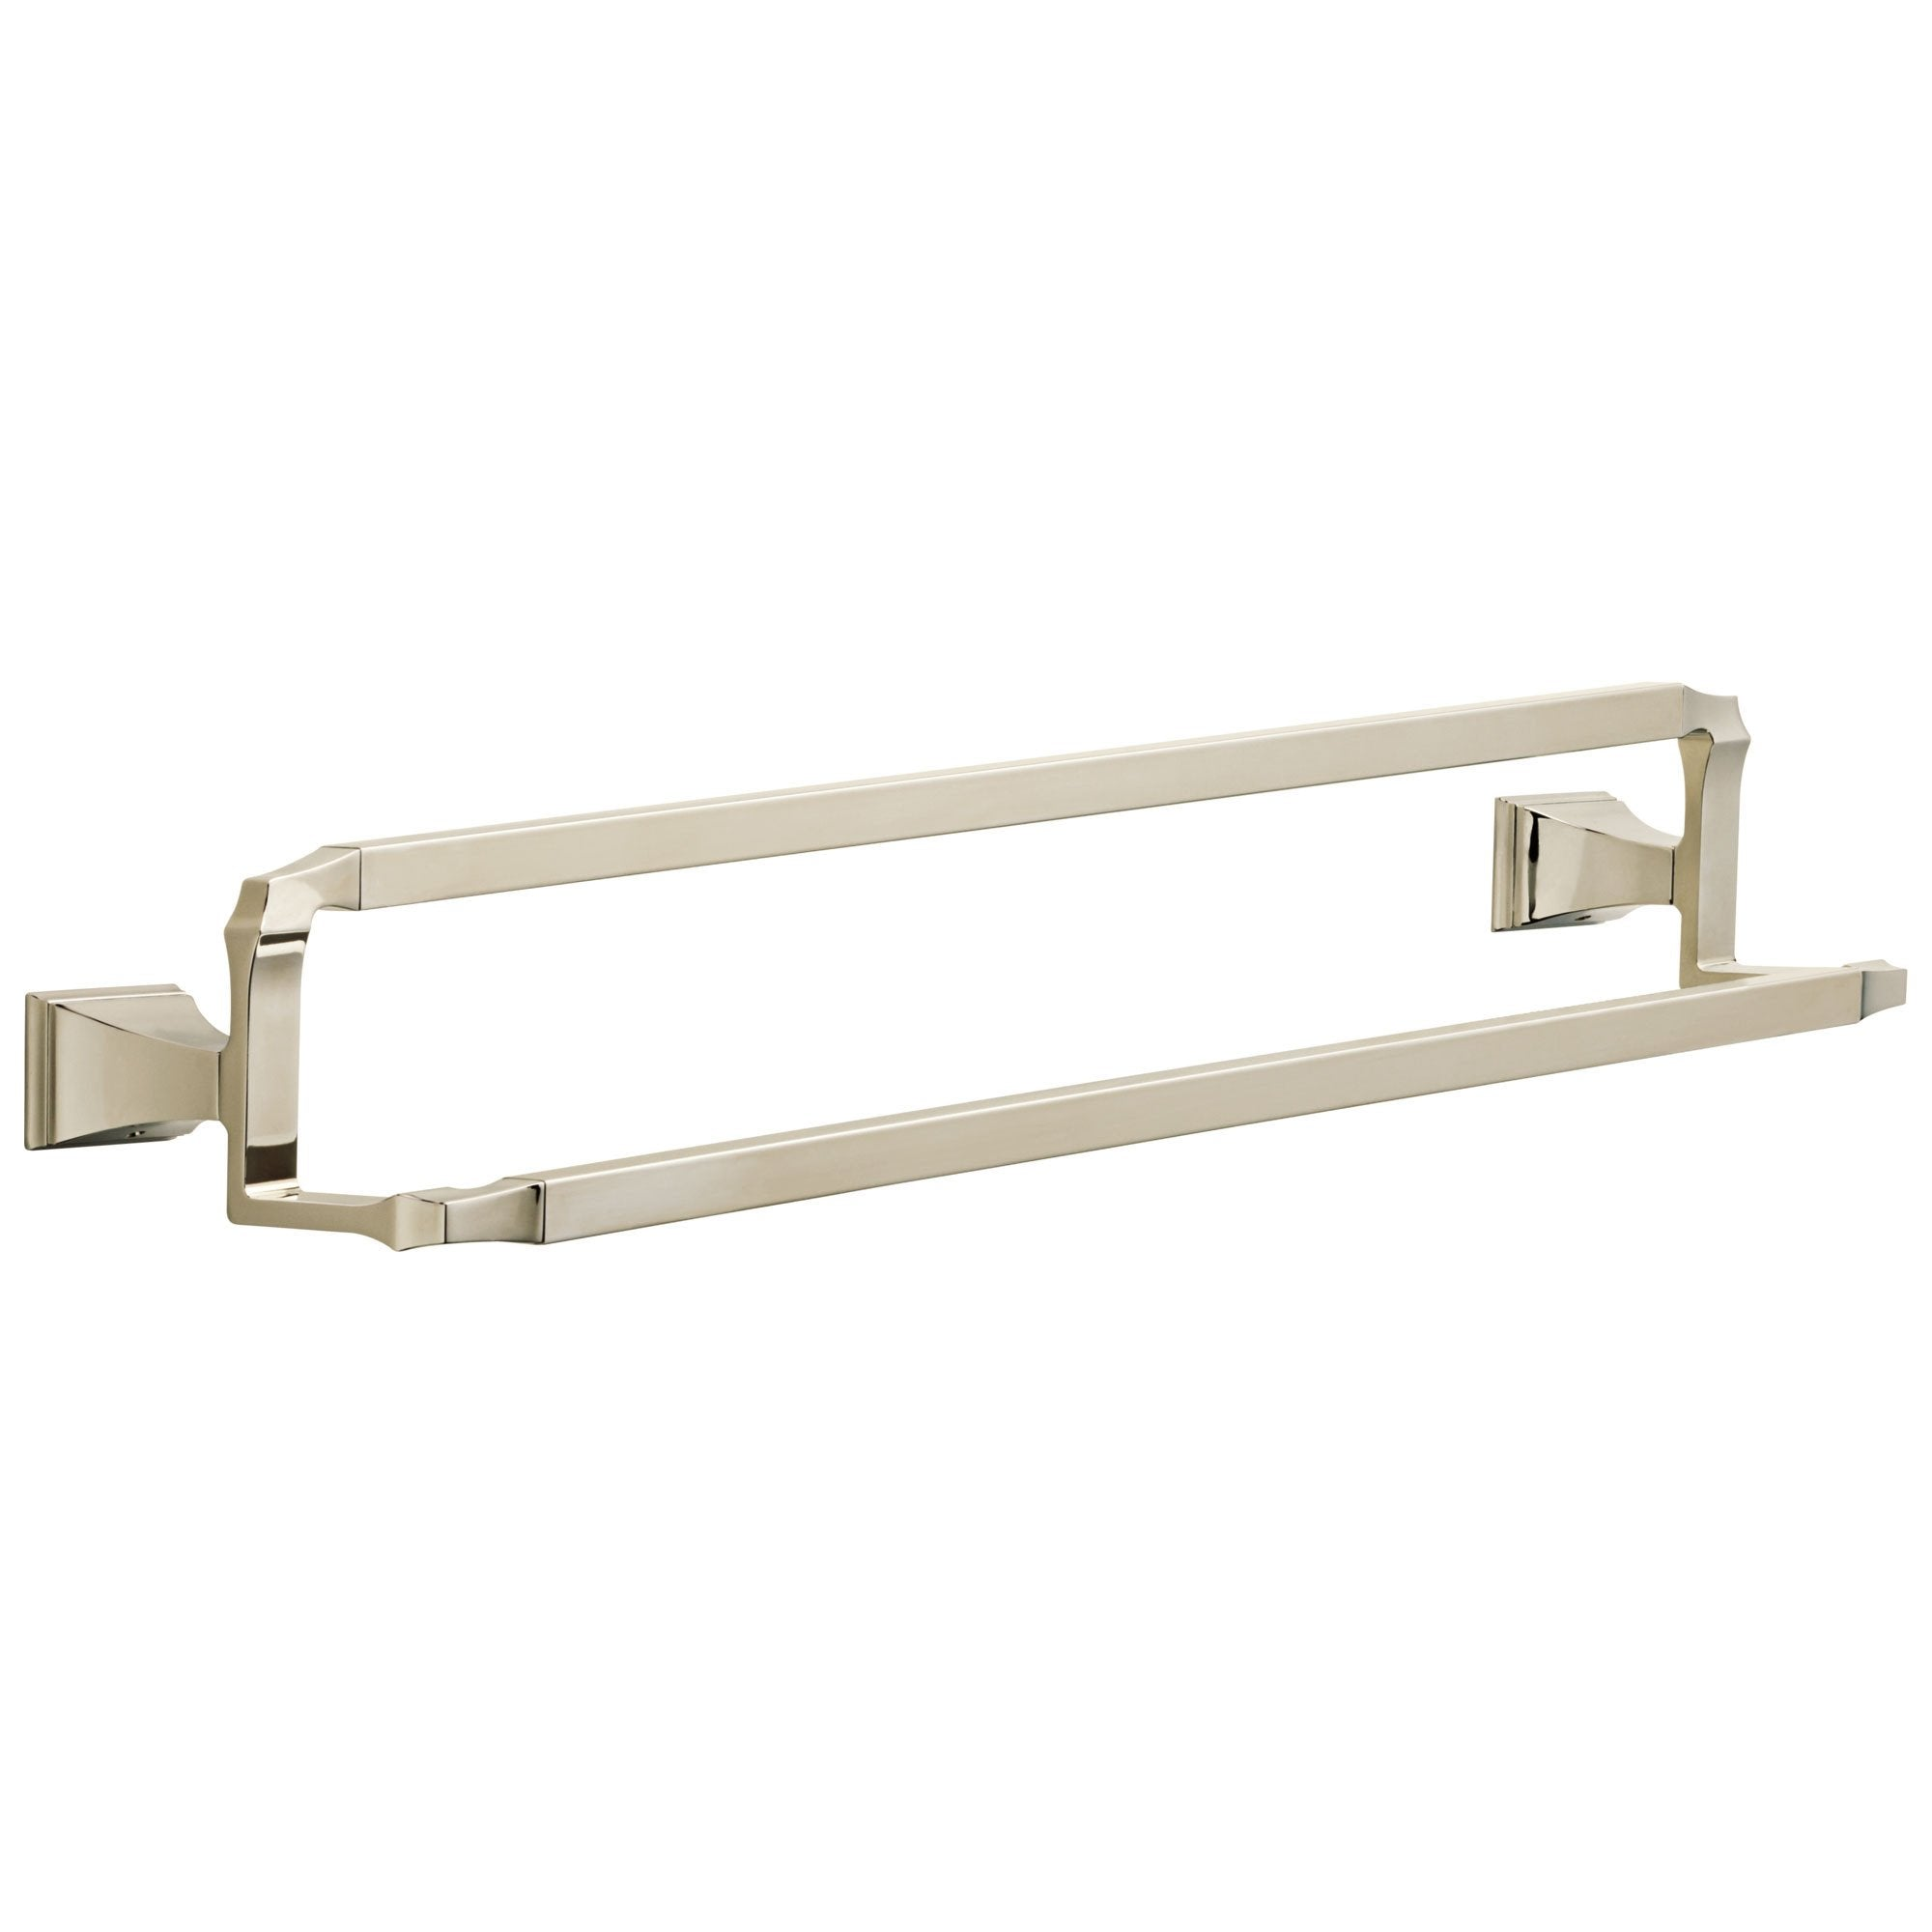 "Delta Dryden Collection Polished Nickel Finish Wall Mounted 24"" Double Towel Bar D75125PN"